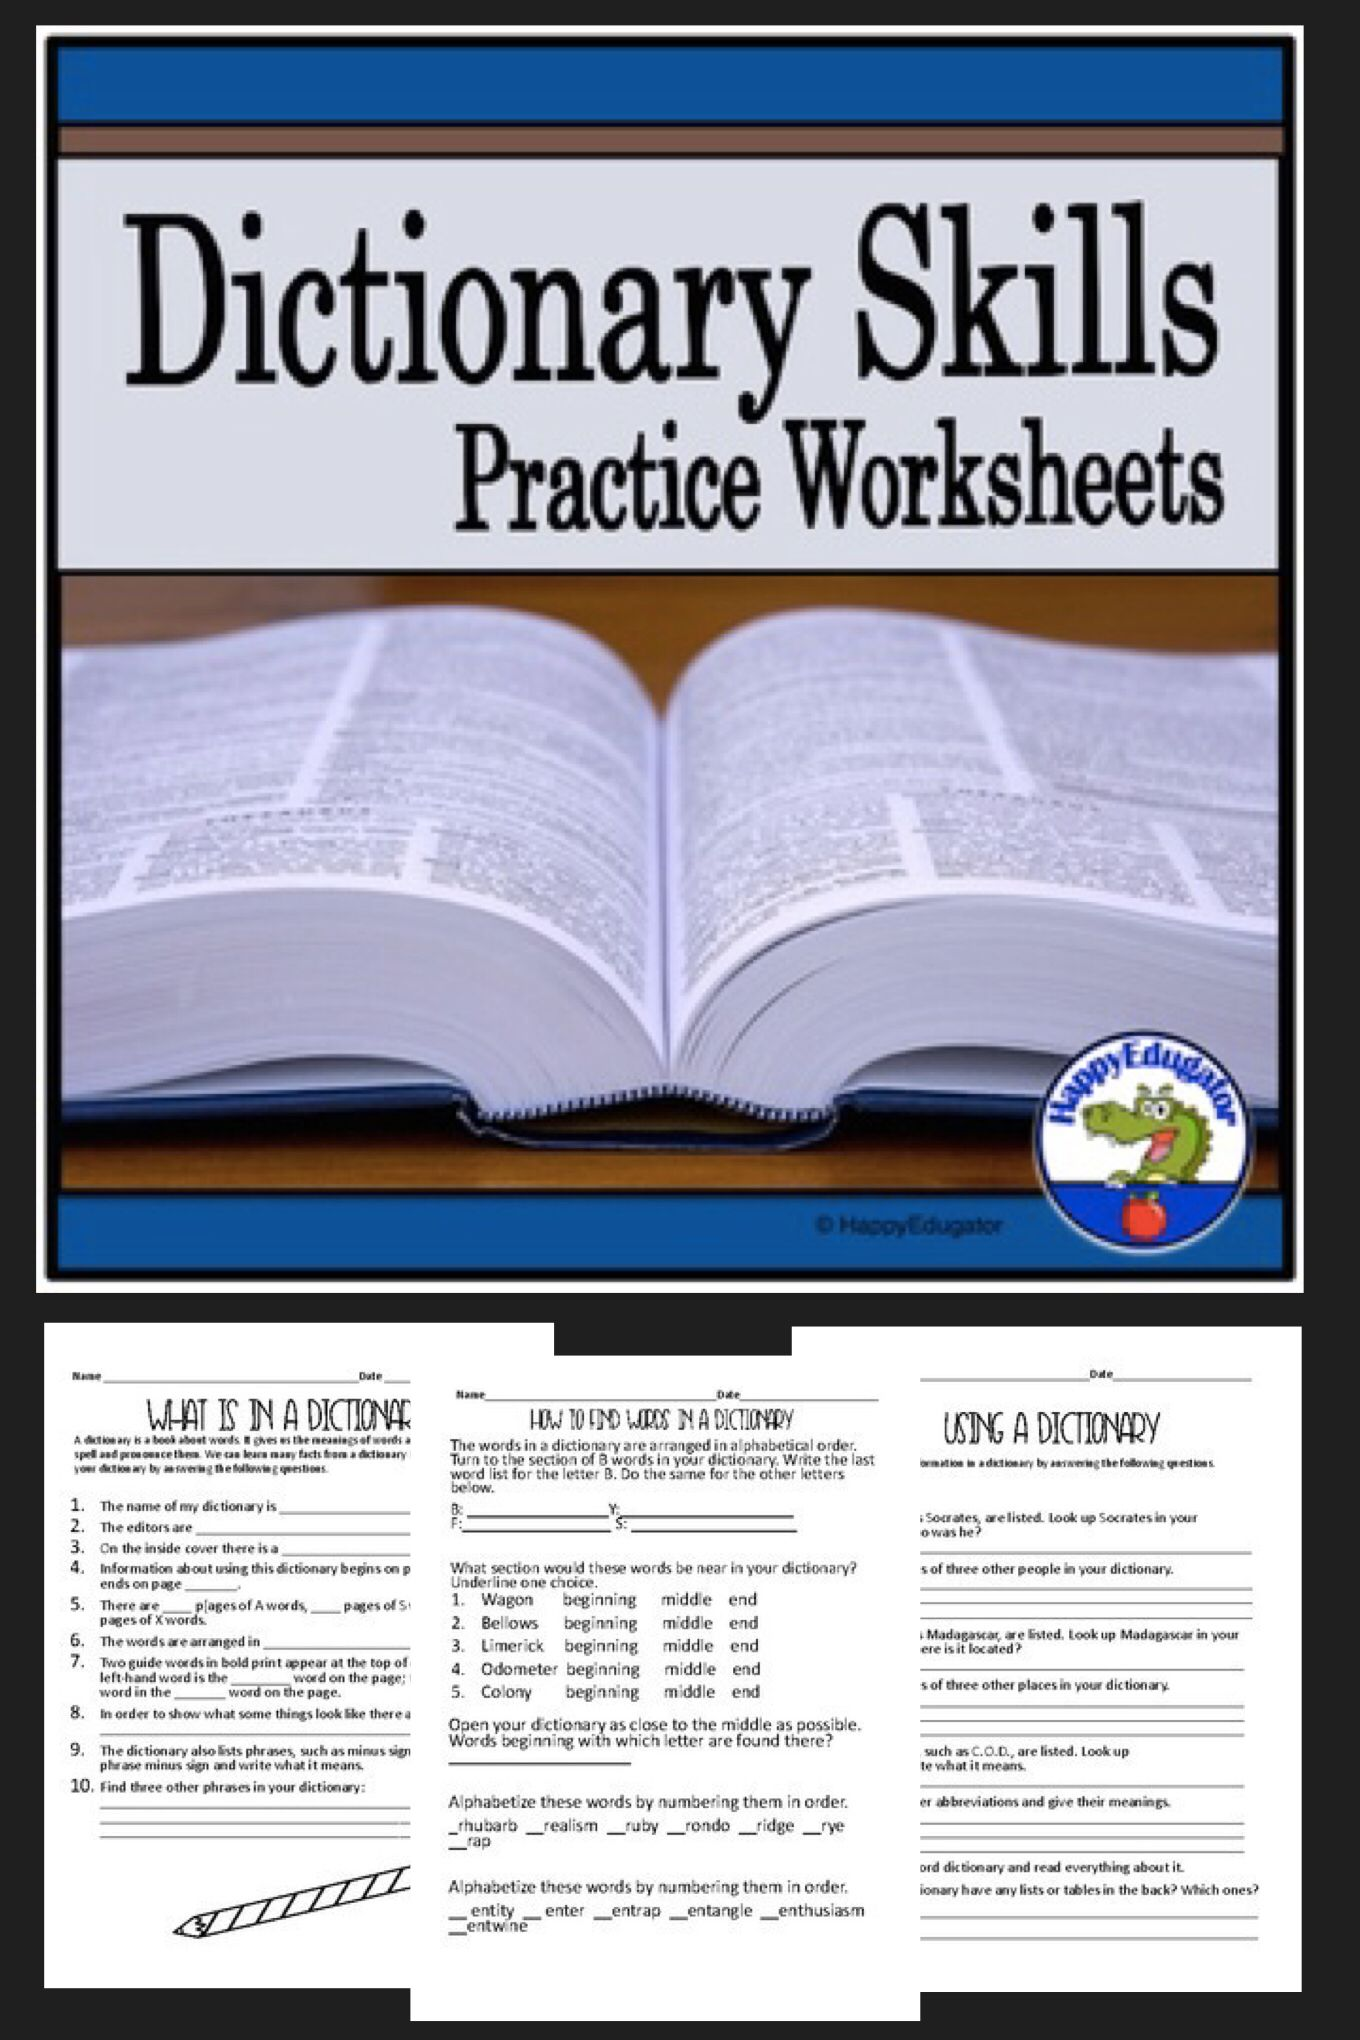 Dictionary Skills Worksheets With Practice Using Guide